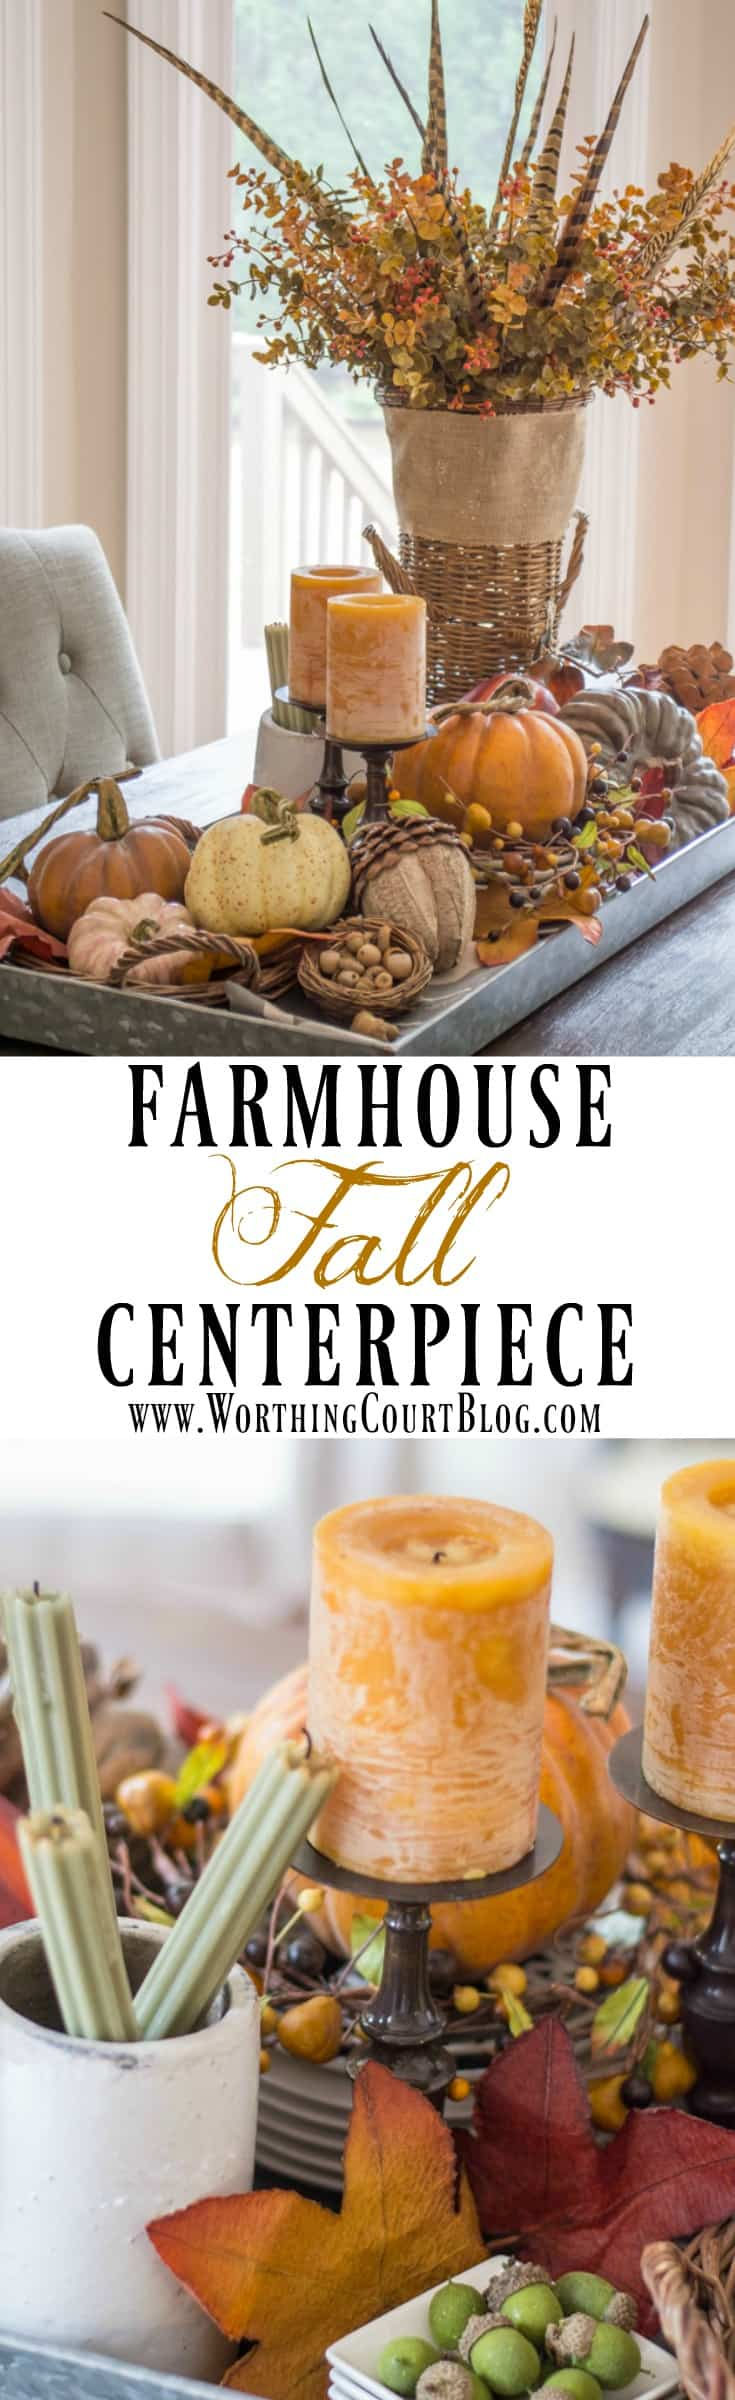 Farmhouse fall centerpiece - Worthing Court